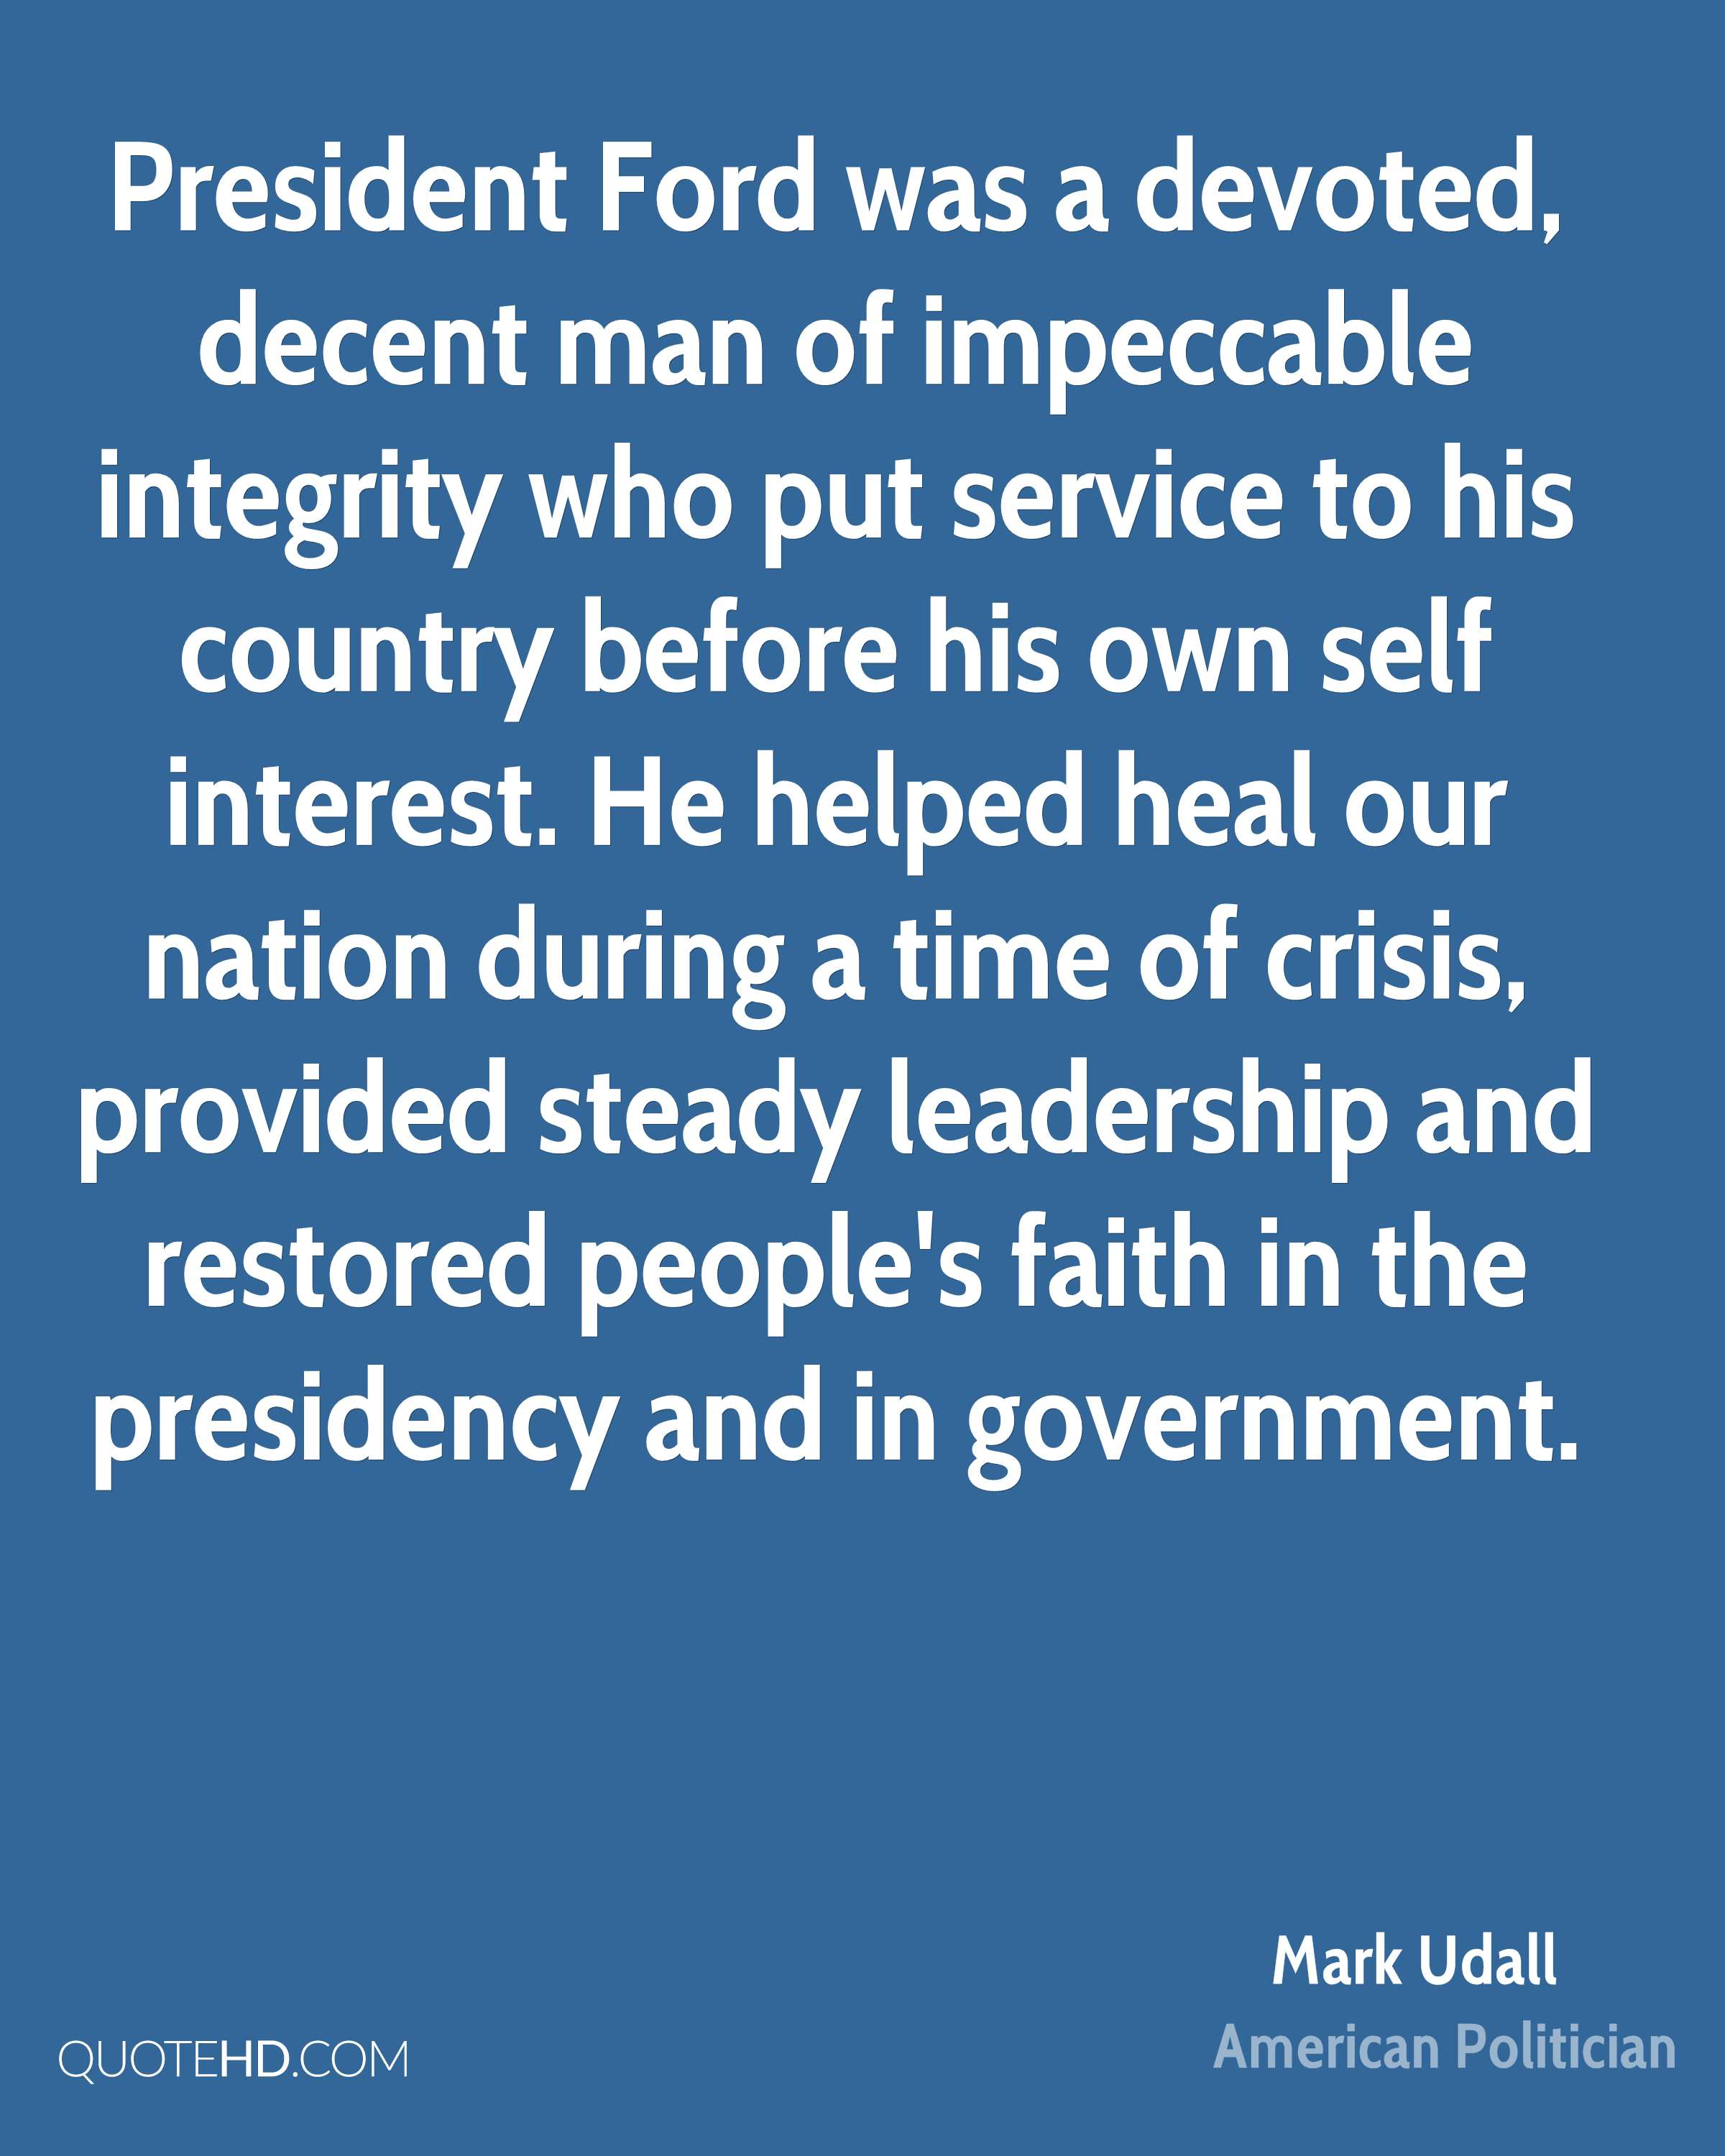 President Ford was a devoted, decent man of impeccable integrity who put service to his country before his own self interest. He helped heal our nation during a time of crisis, provided steady leadership and restored people's faith in the presidency and in government.